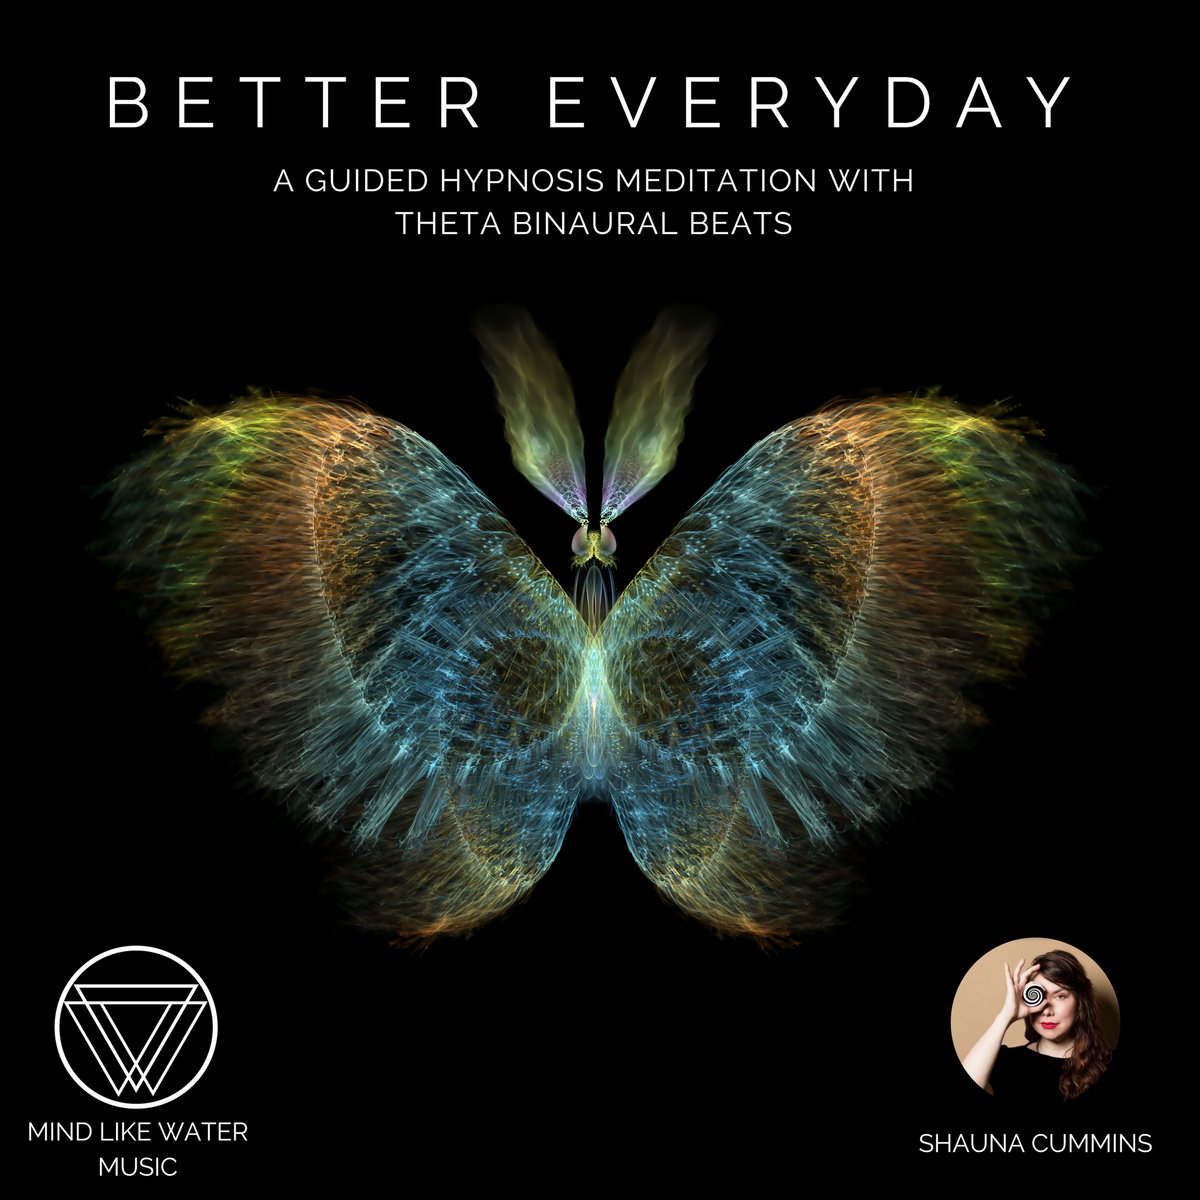 Better Everyday - A Guided Hypnosis Meditation with Theta